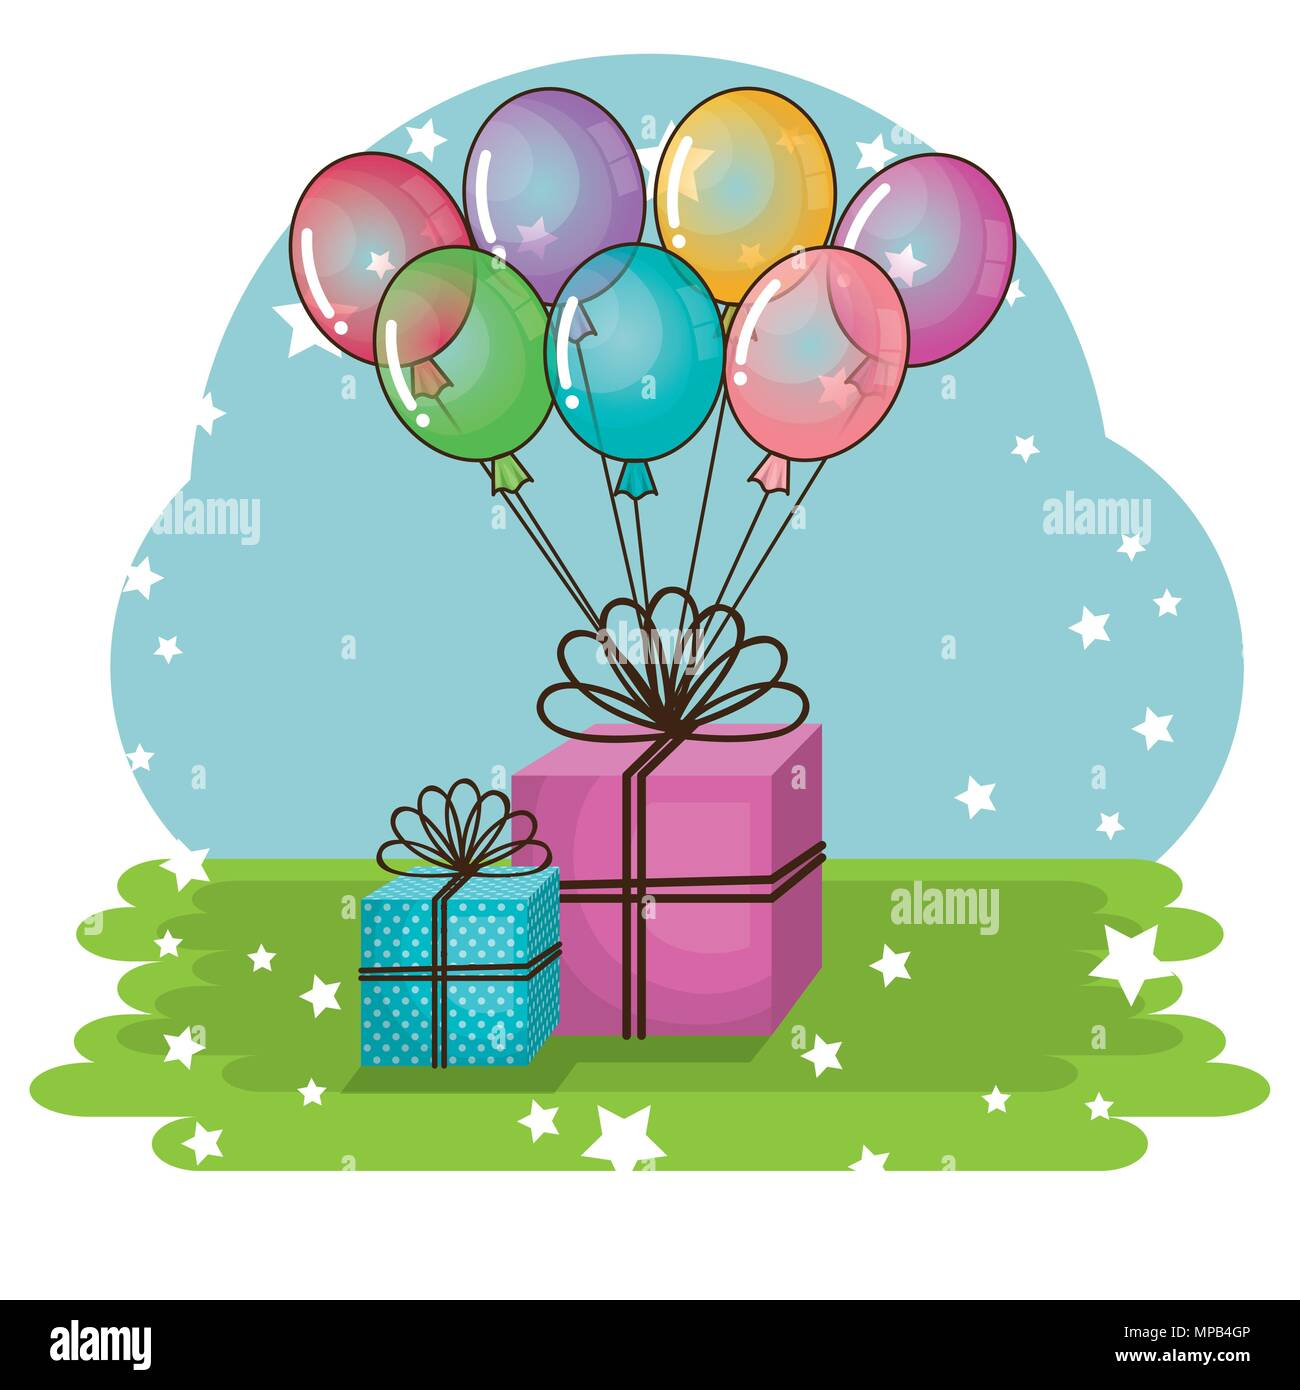 happy birthday card with gifts and balloons helium stock vector art